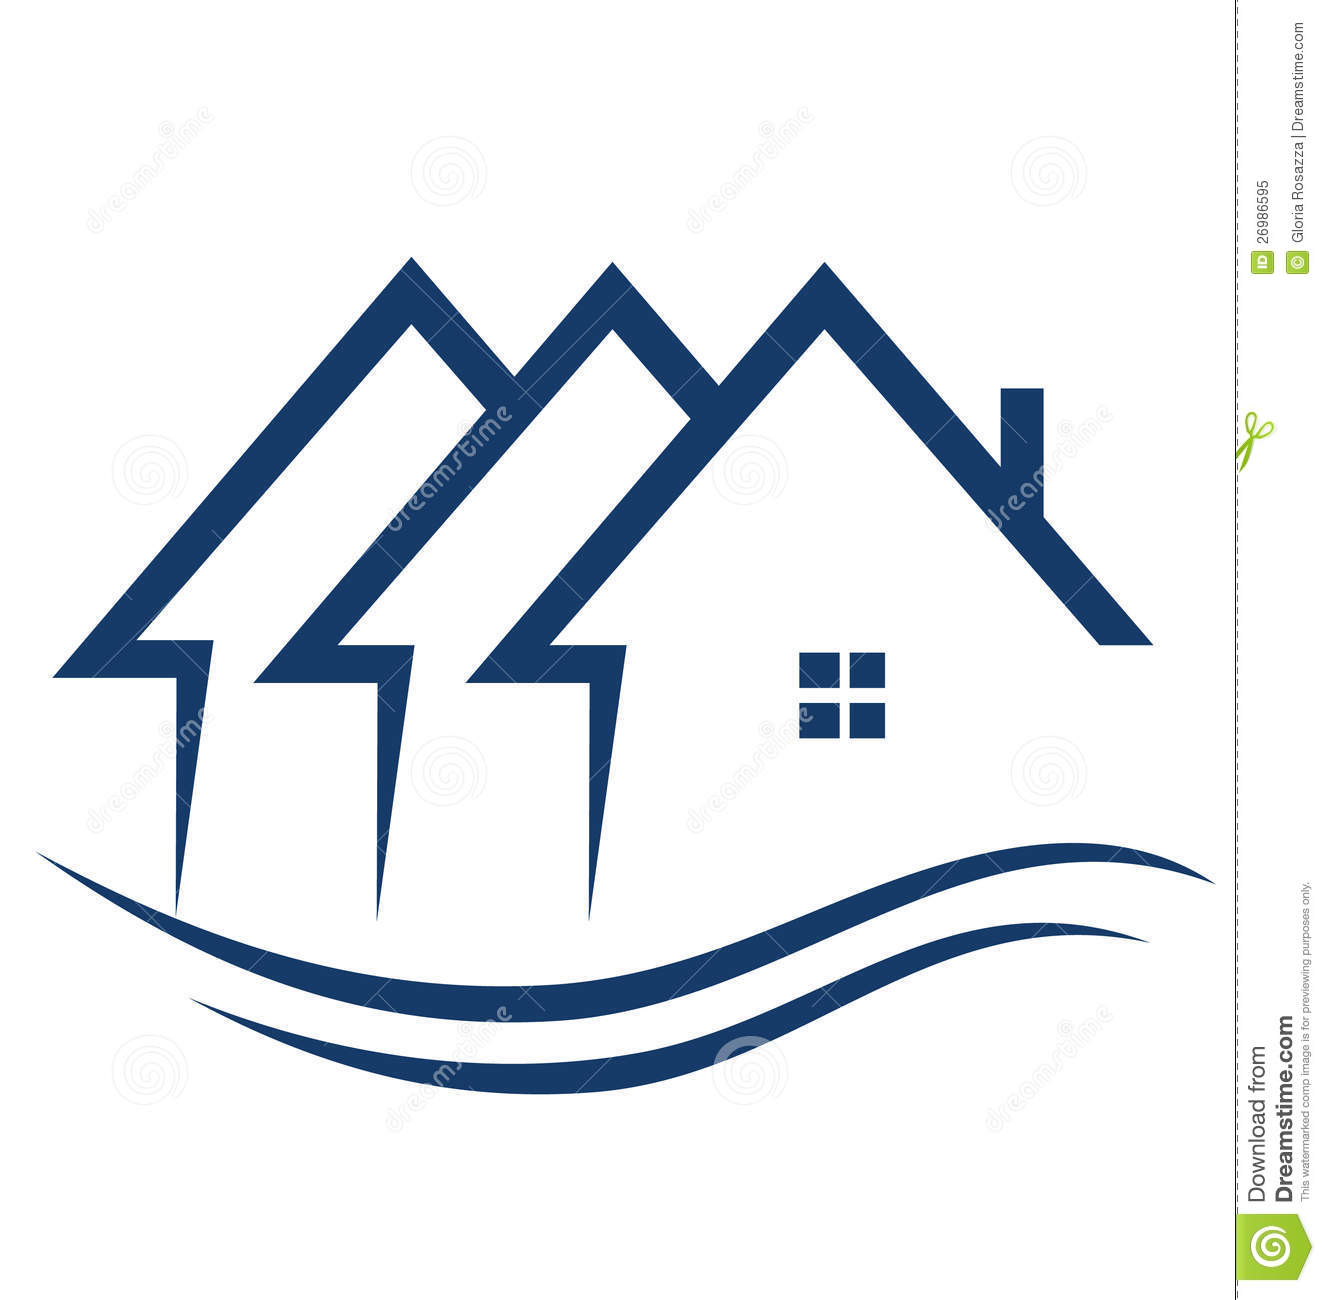 Real Estate Houses Logo Royalty Free Stock Photo Image 26986595